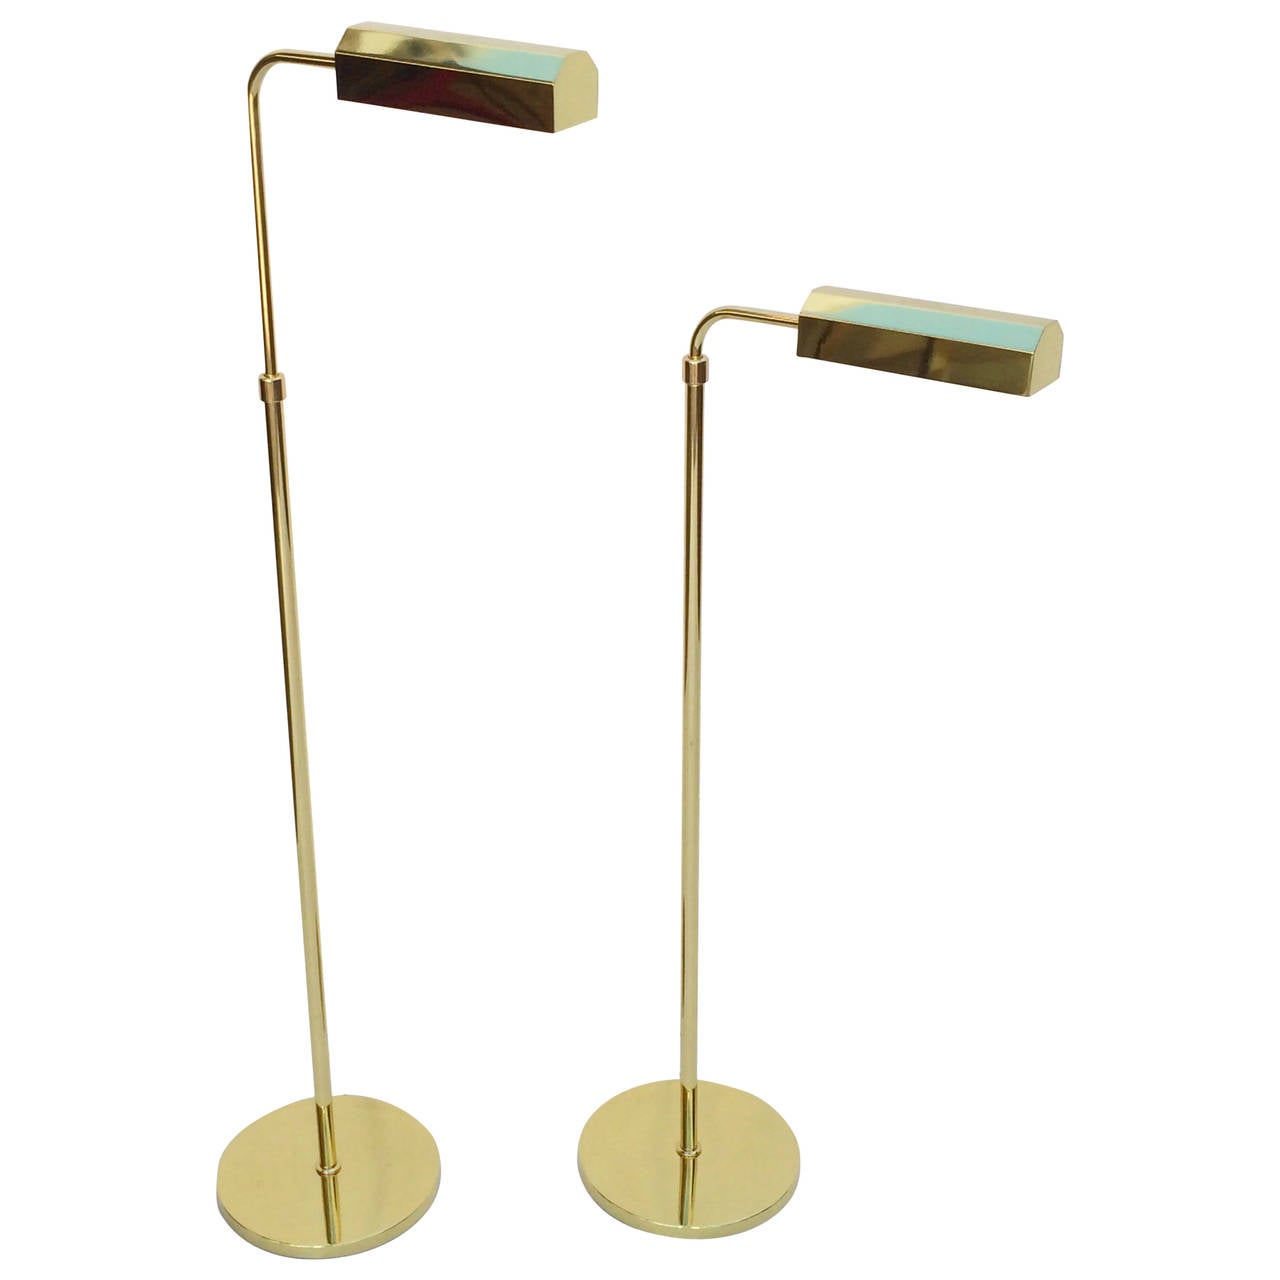 Pair of Polished Brass Adjustable Floor Lamps by Casella